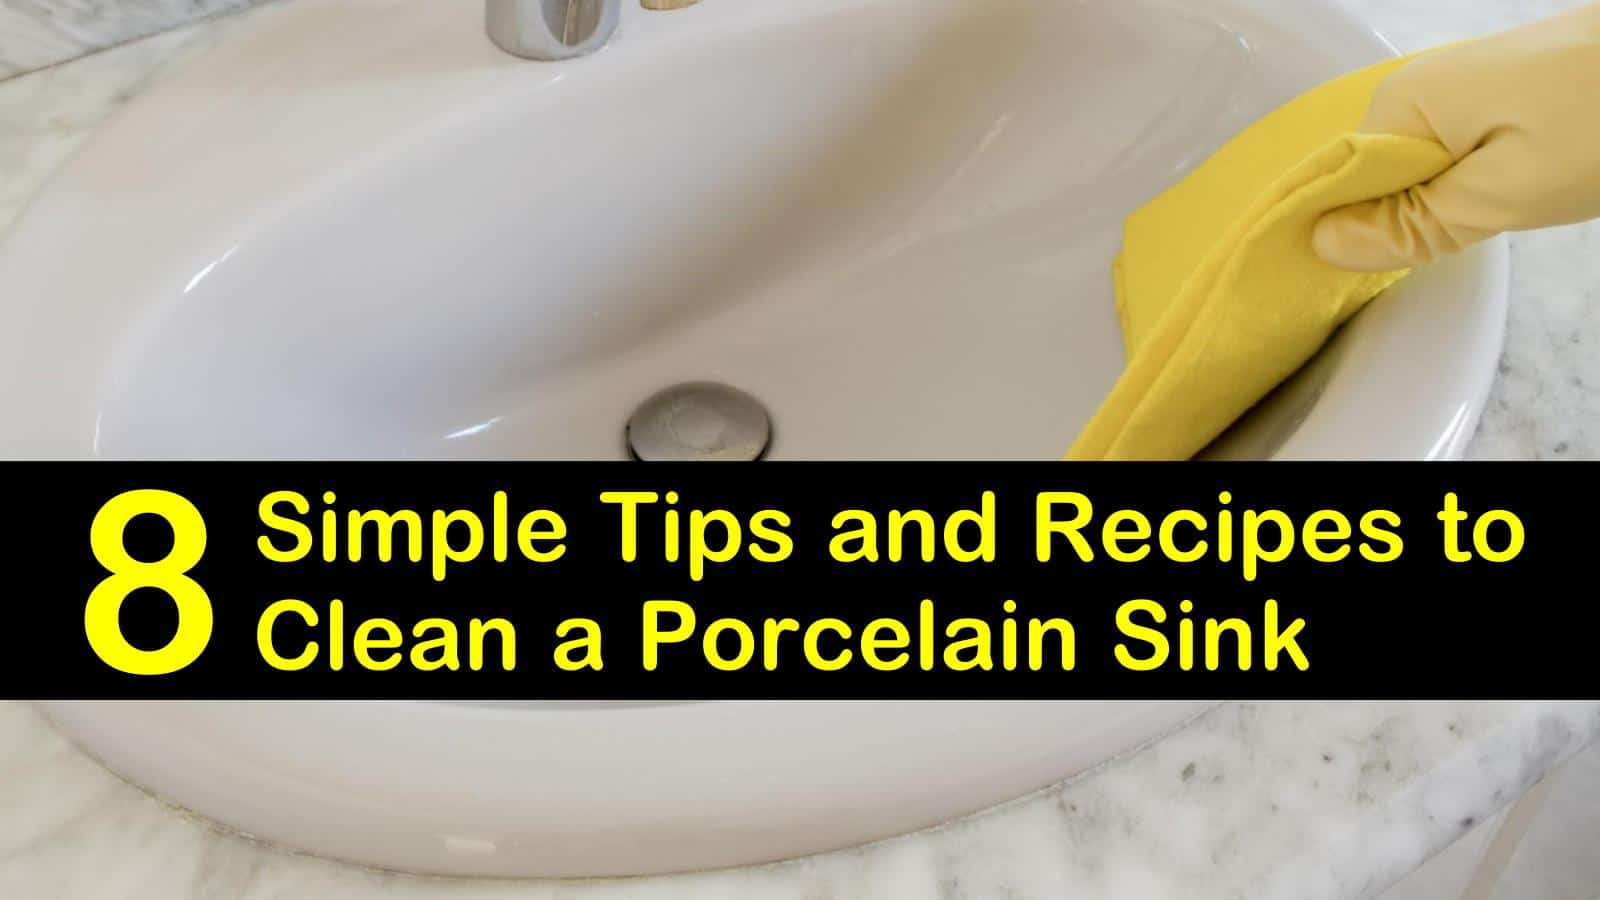 8 Simple Tips and Recipes to Clean a Porcelain Sink